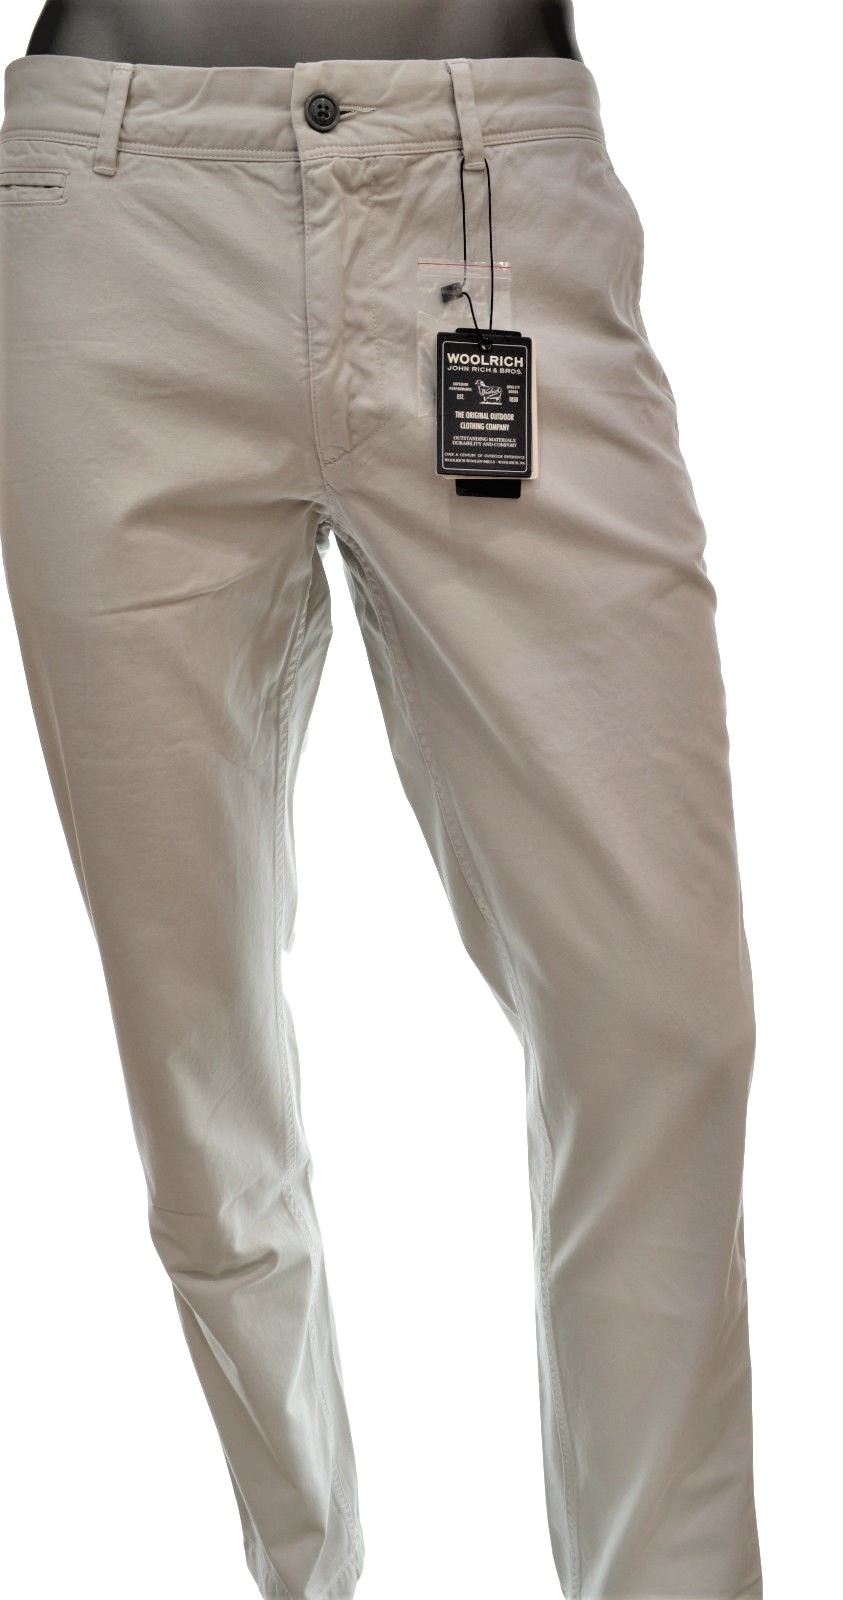 WOOLRICH PANTALONE UOMO TG. 38 COLORE SUMMER STONE CLASSIC CHINO FIT WOPAN1084